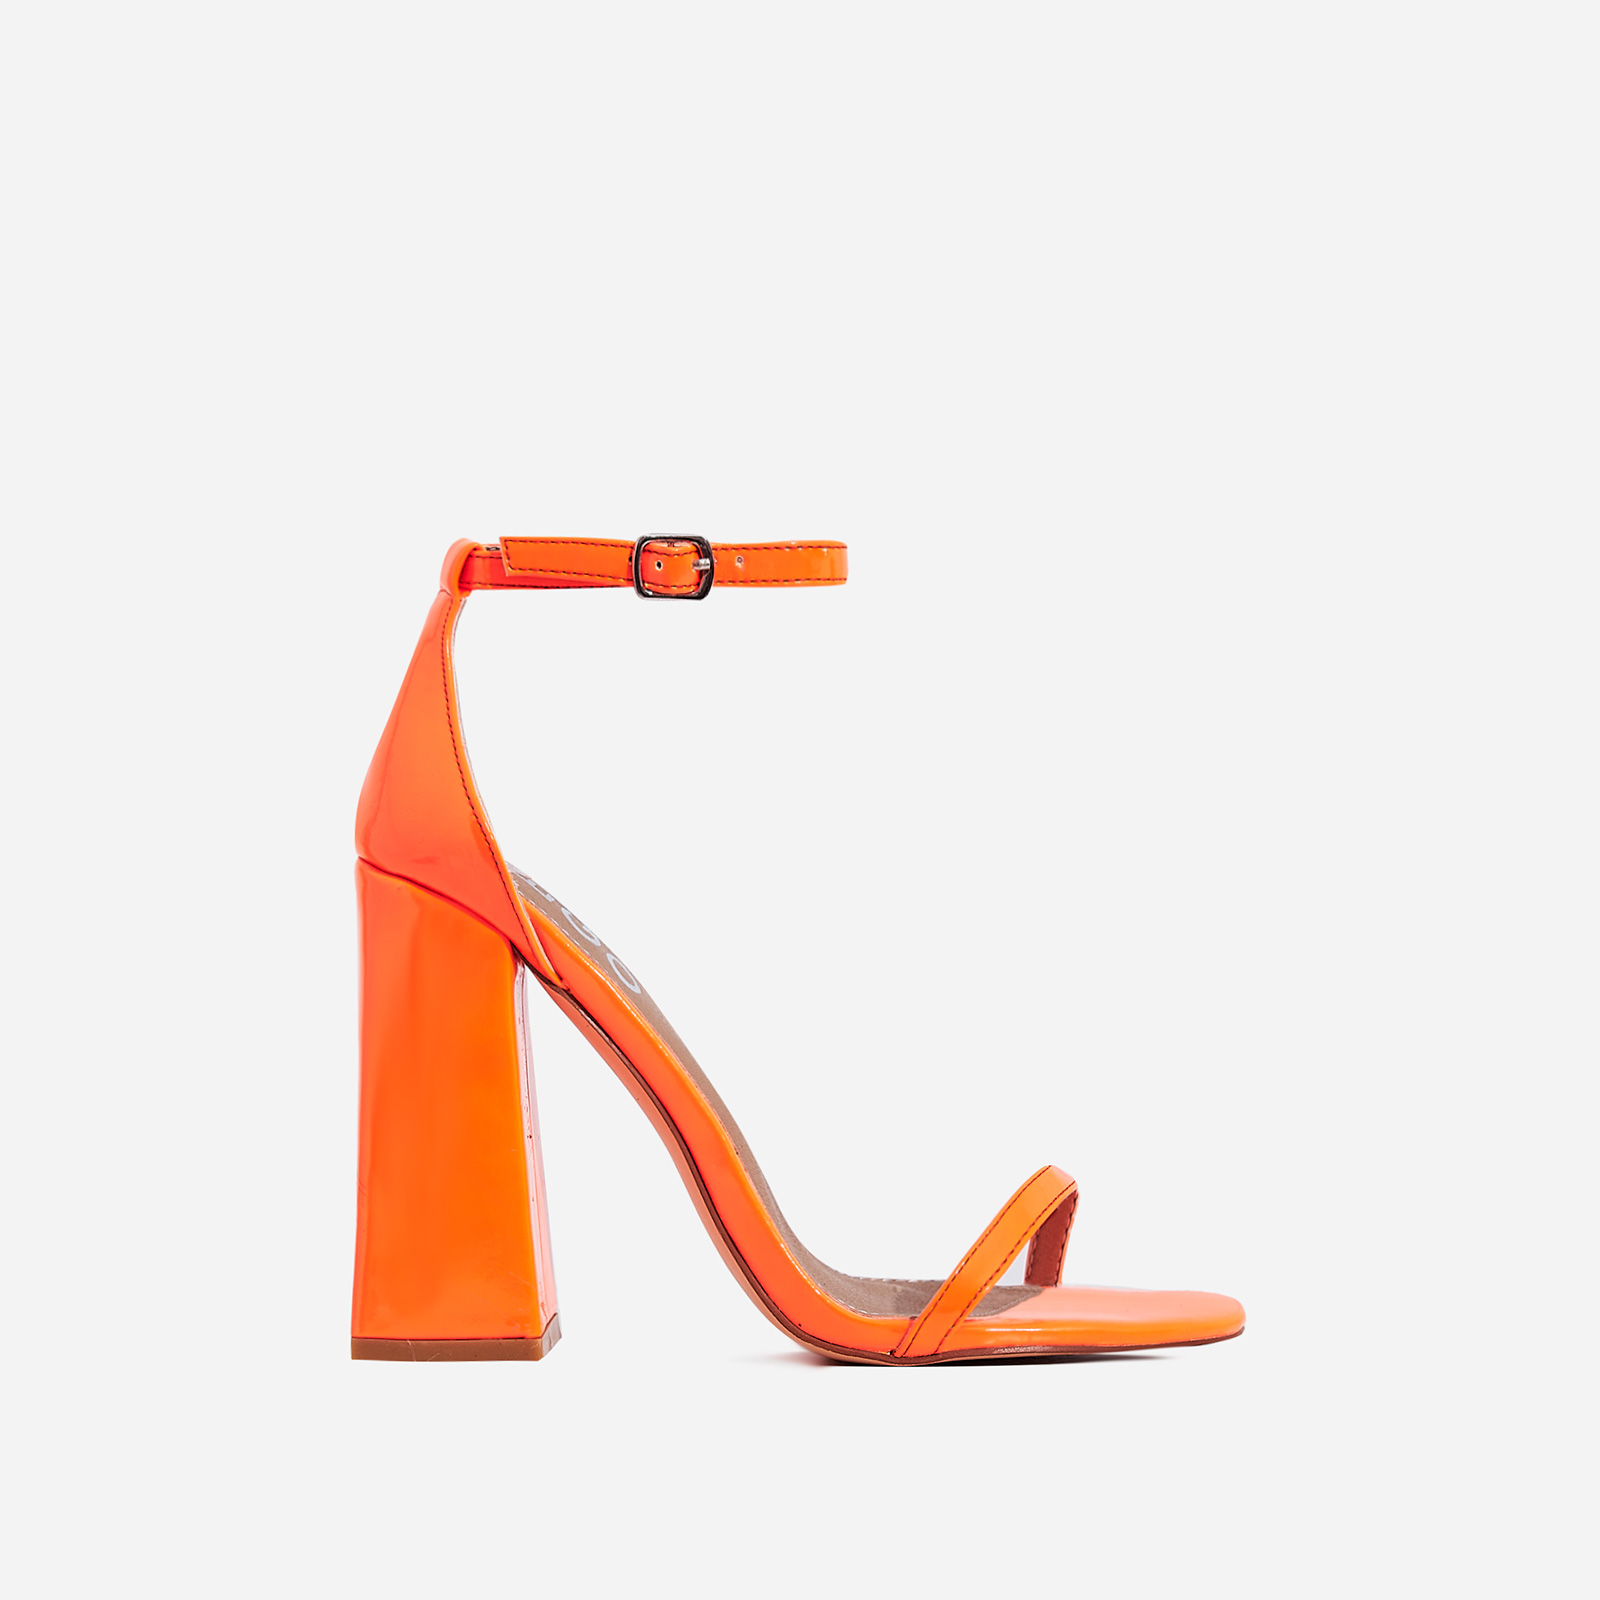 Atomic Square Block Heel  In Neon Orange Patent